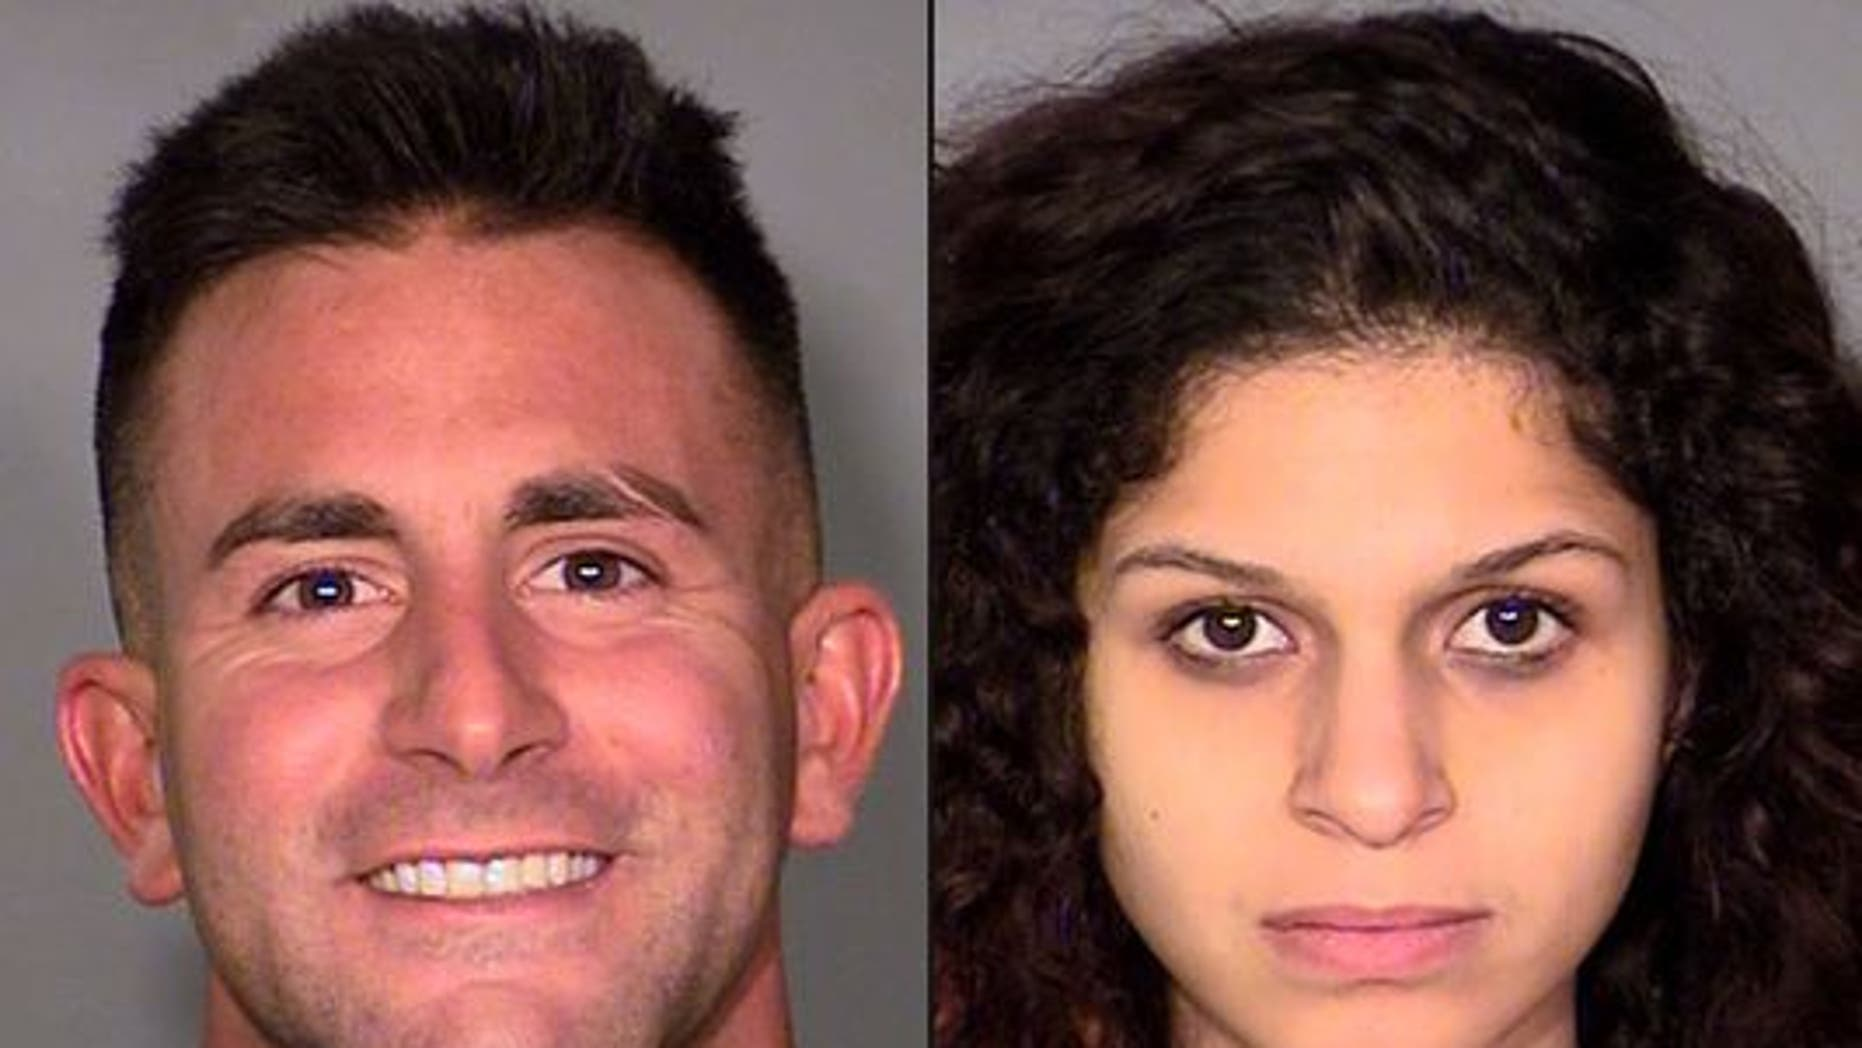 Philip Frank Panzica III, left, and Chloe Scordianos were allegedly caught on tape having sex on a Las Vegas Ferris wheel.